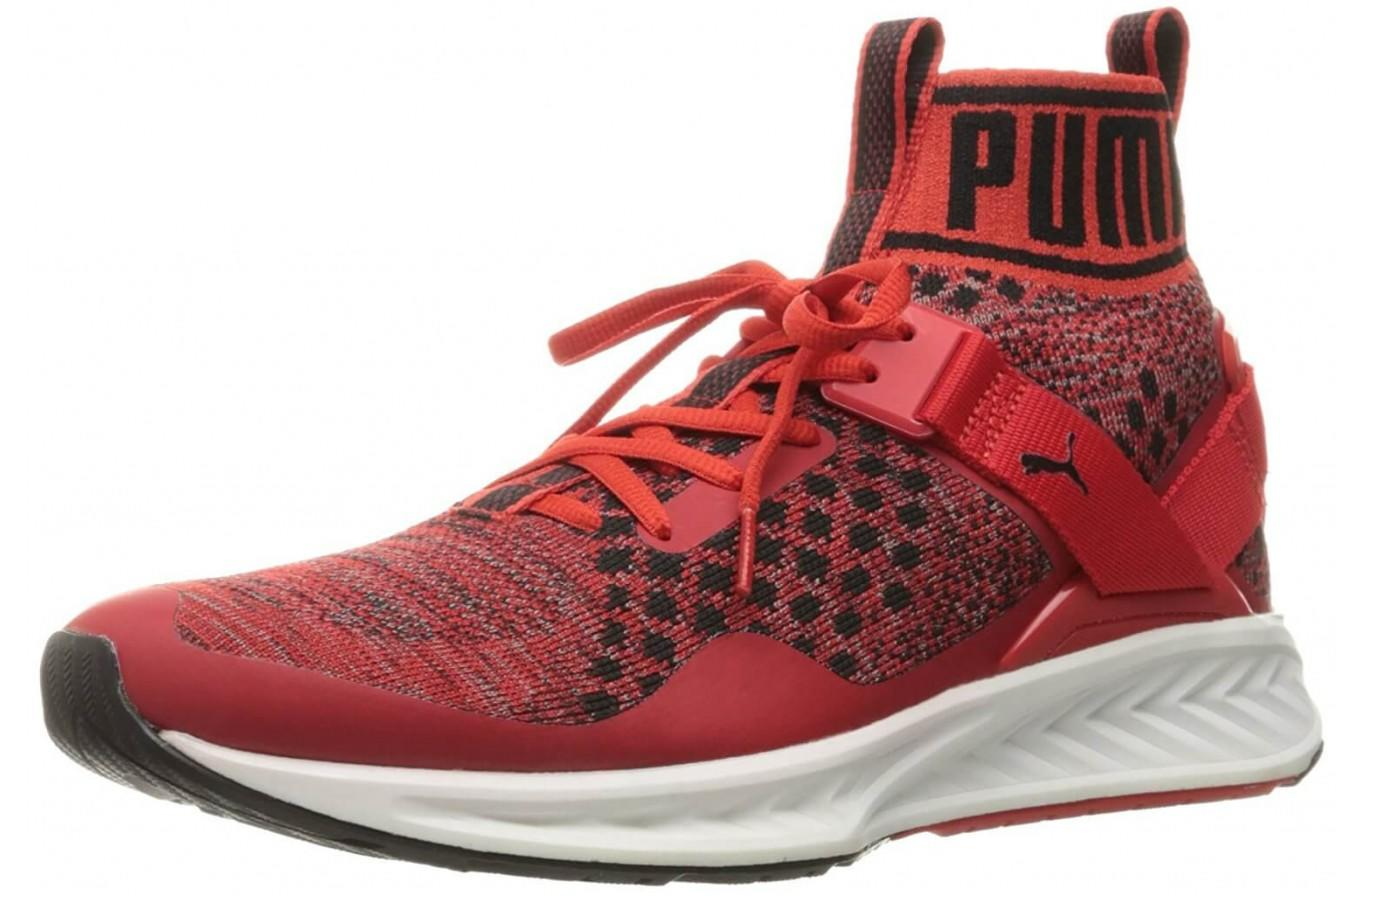 cc96933ad0e1 the Puma Ignite evoKnit is a stylish high top running shoe ...